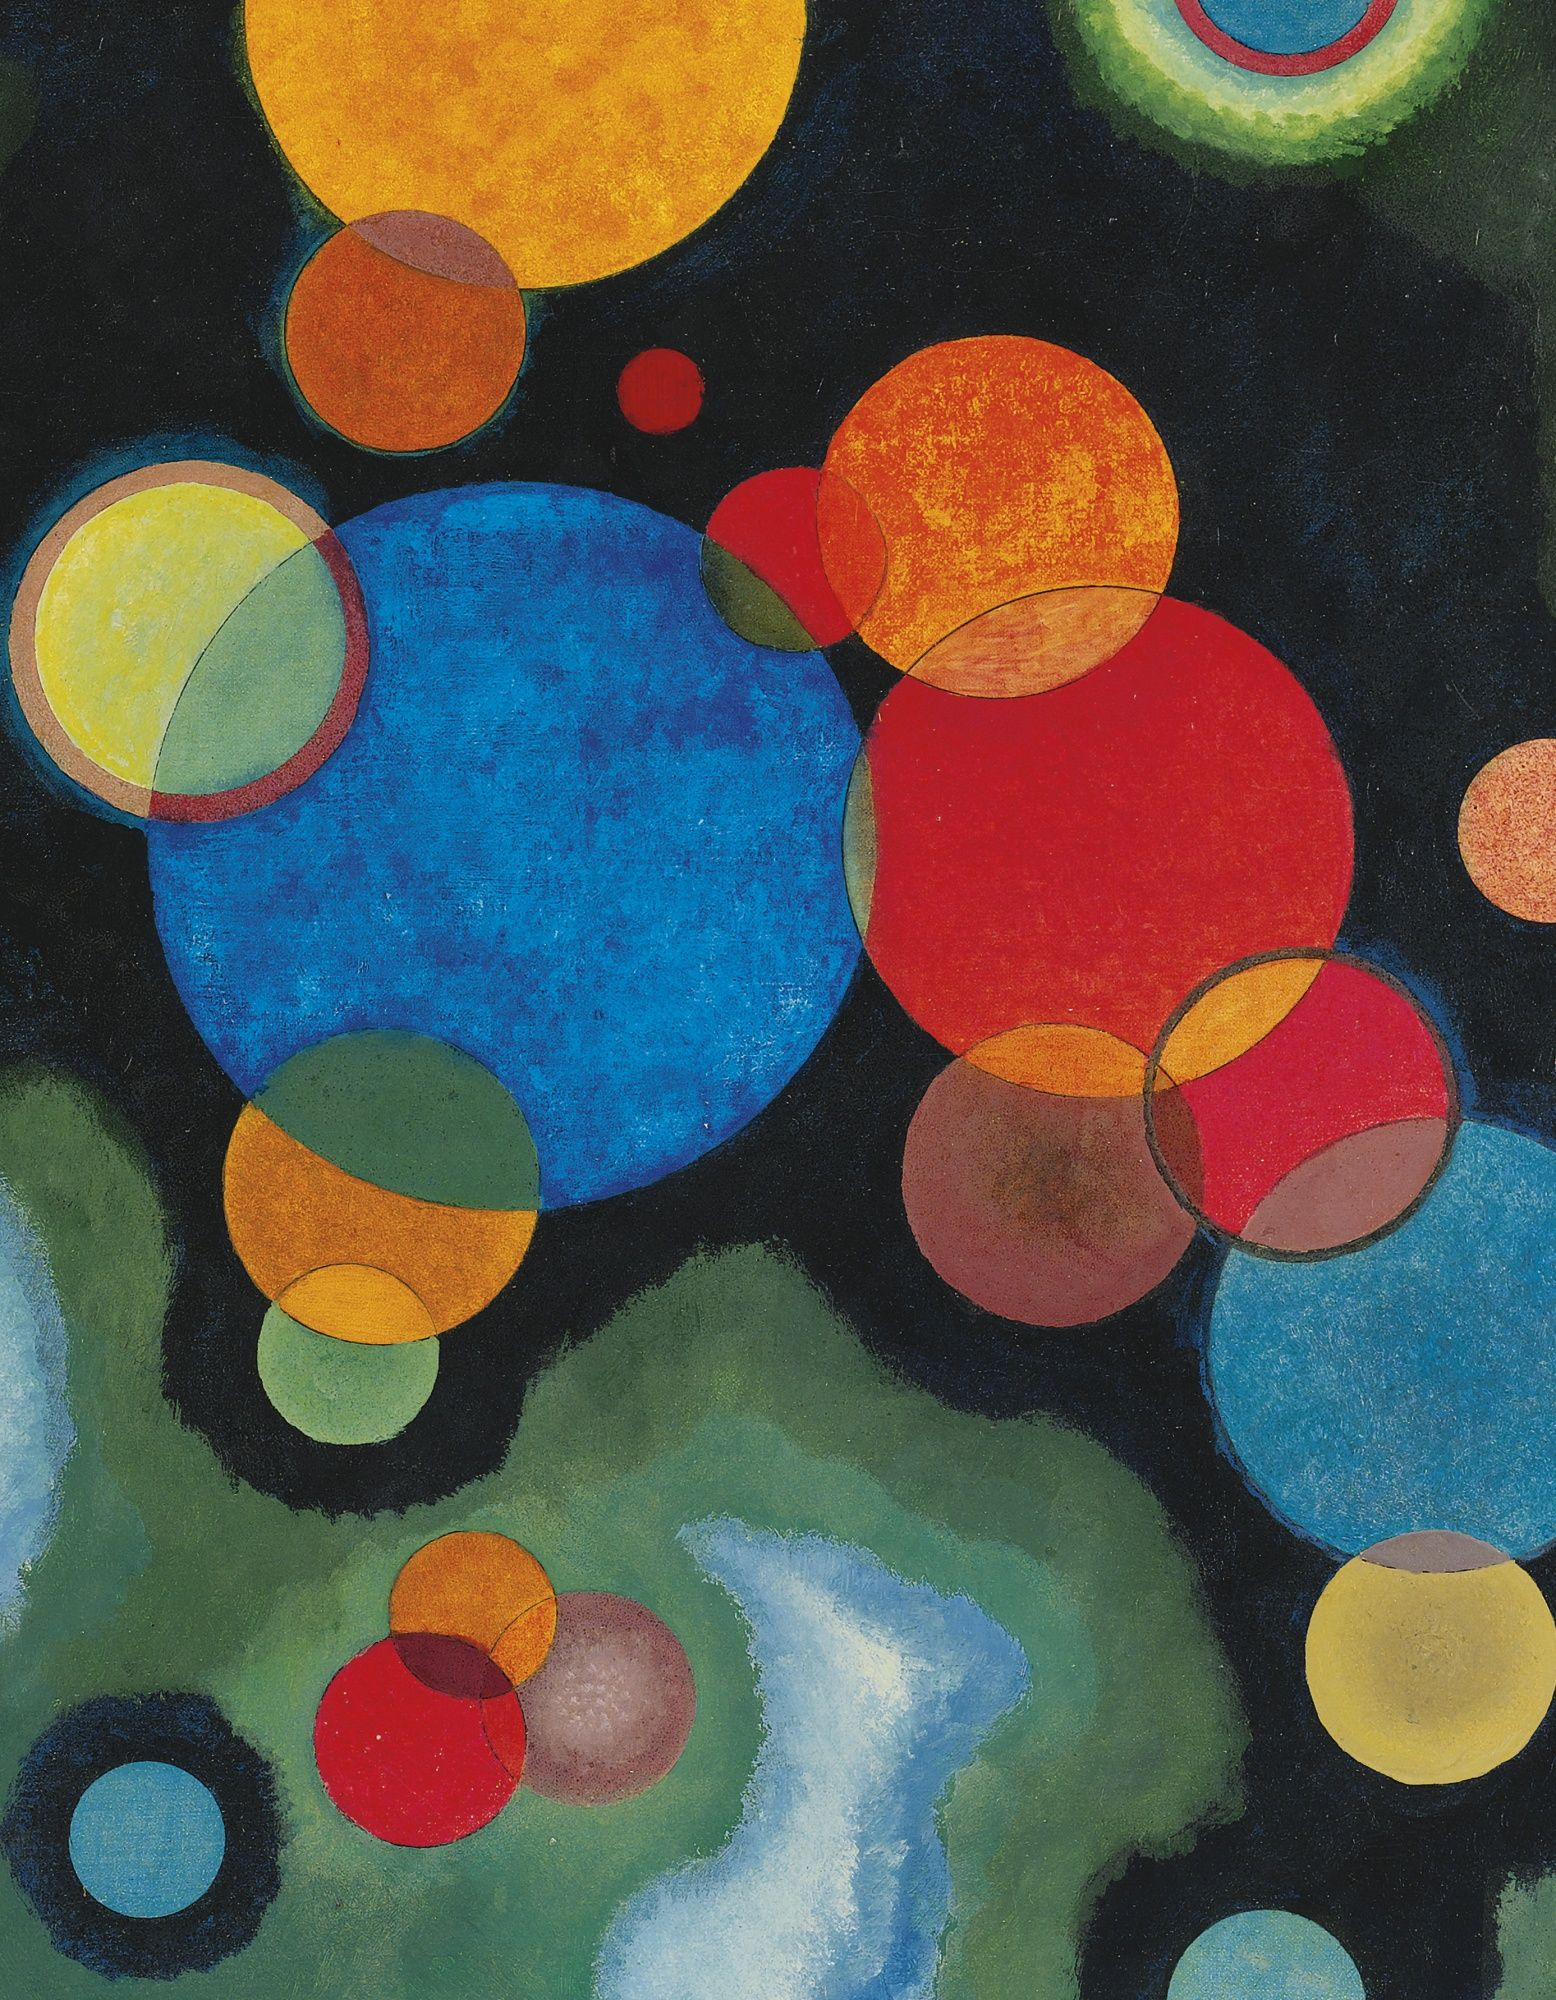 Wassily Kandinsky's Vertiefte Regung (Deepened Impulse) Painted in February 1928